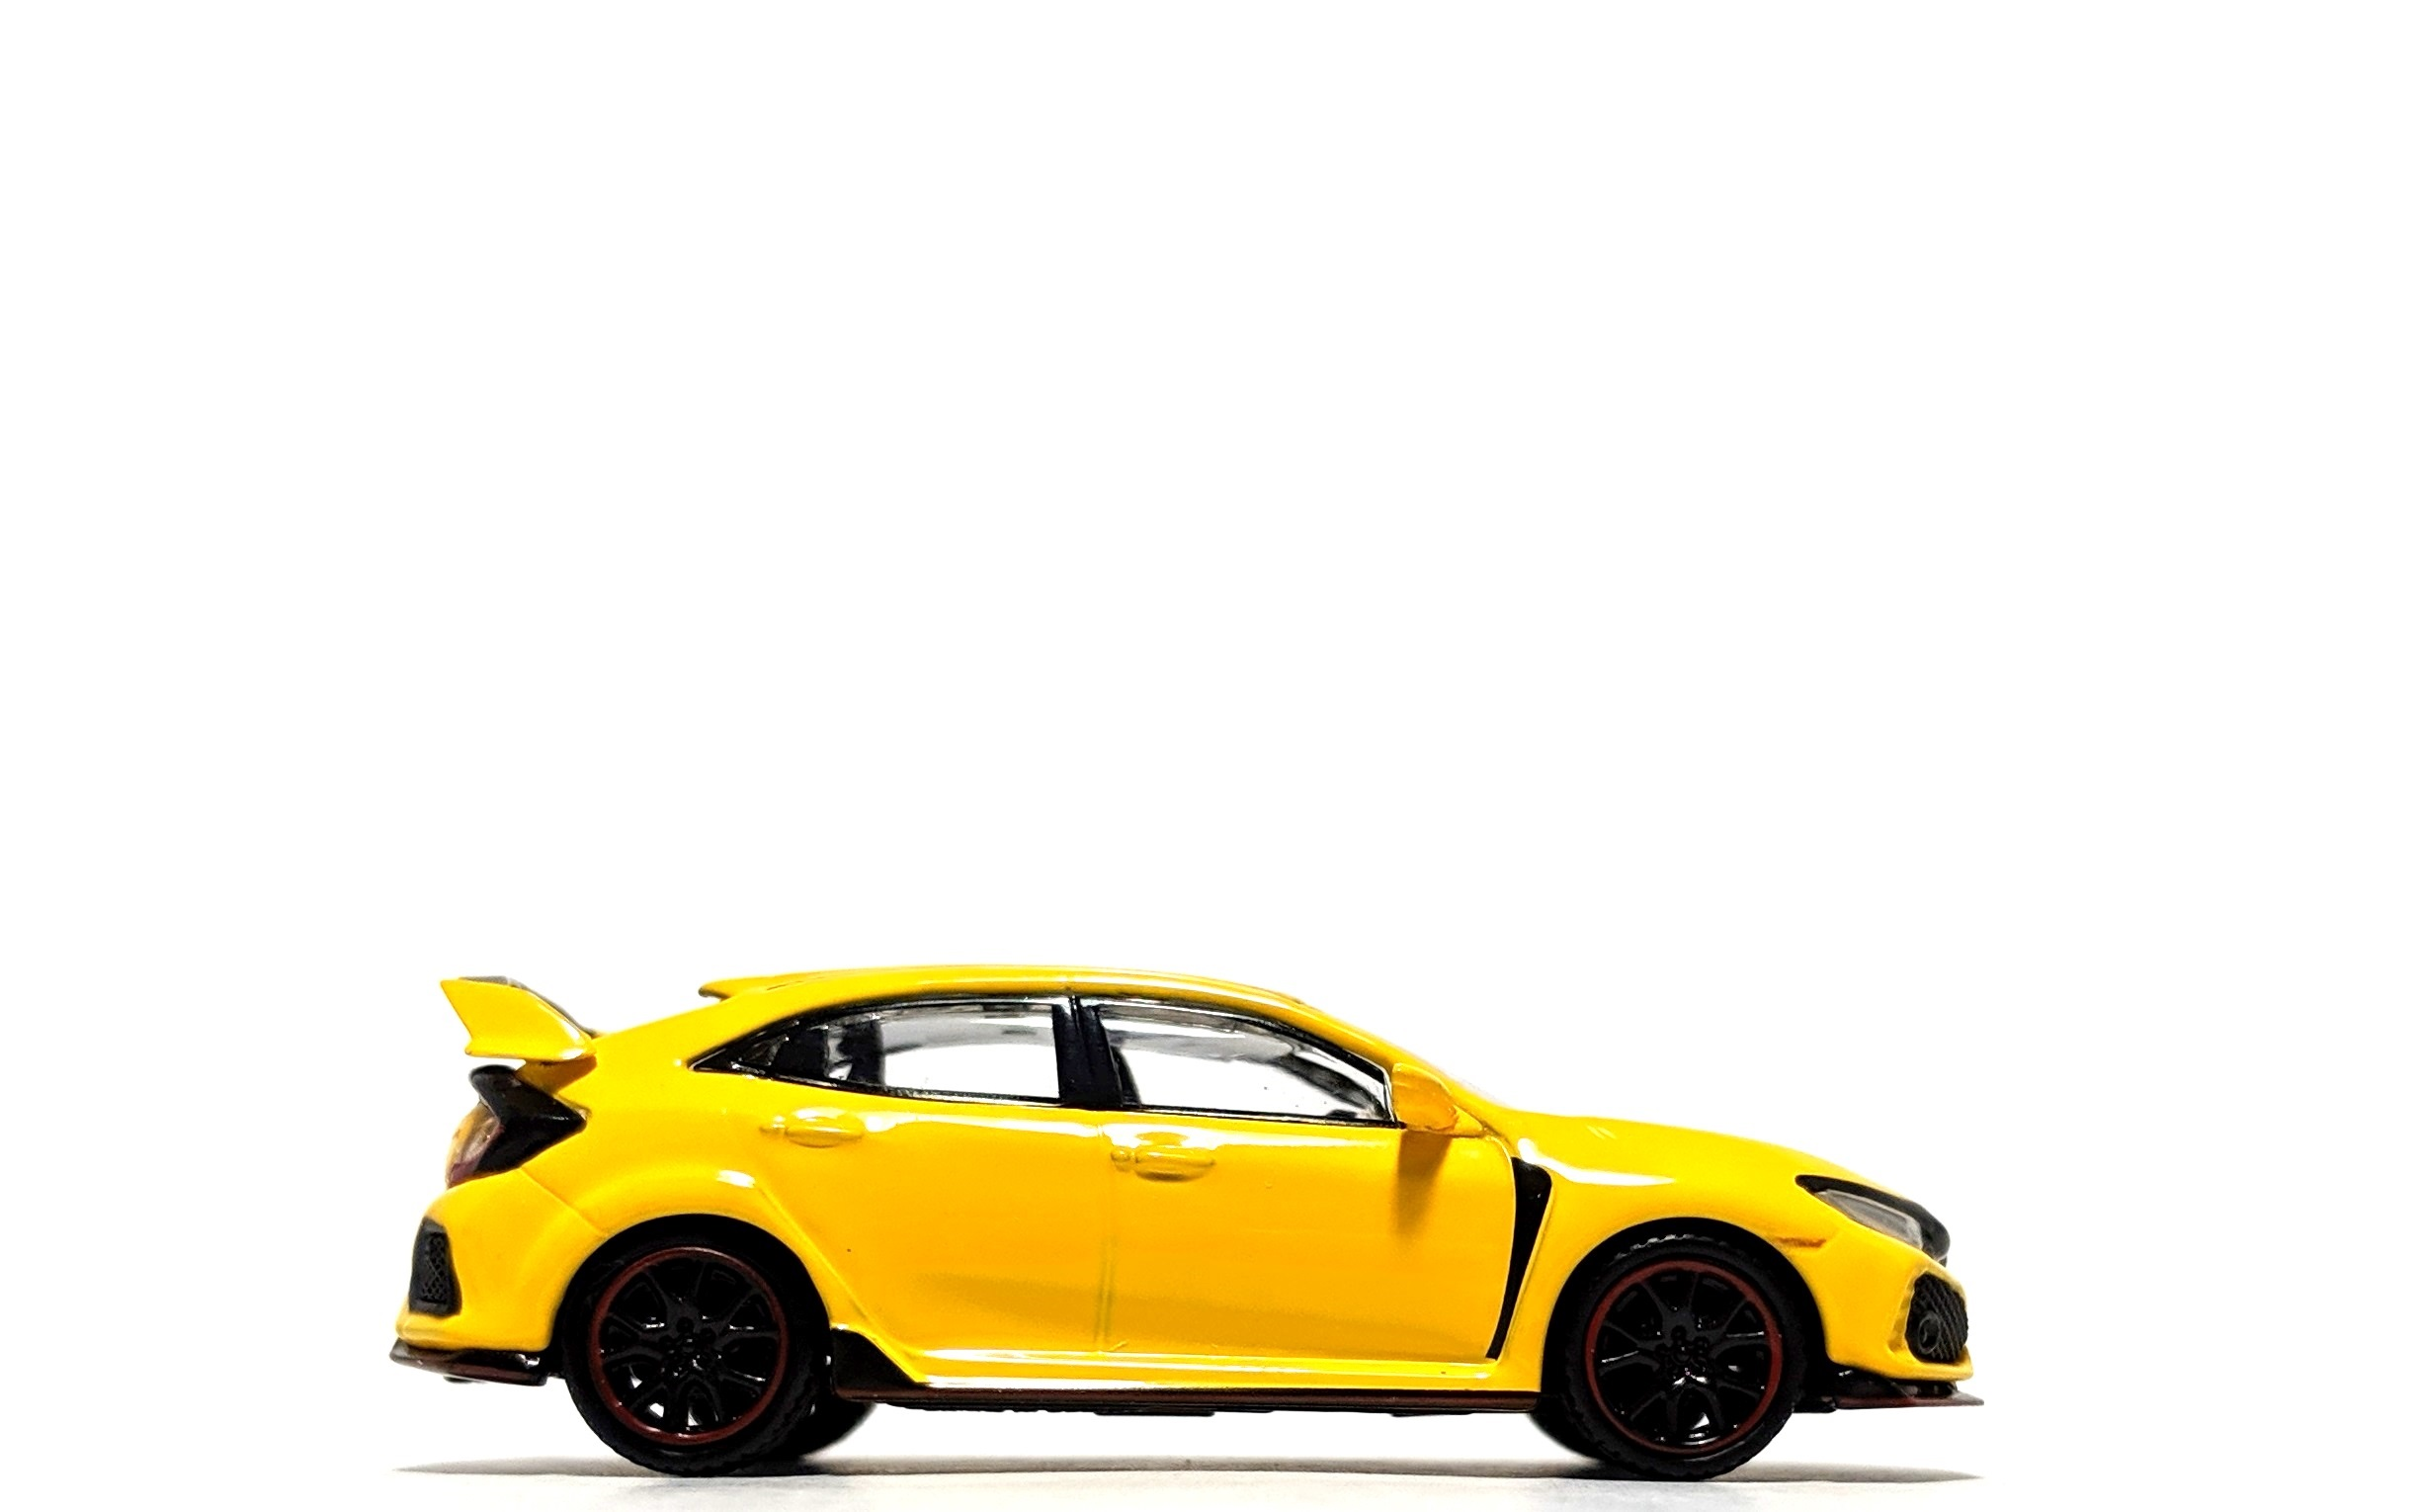 Honda Civic Type R (FK8) Phoenix Yellow - TSM/Mini GT